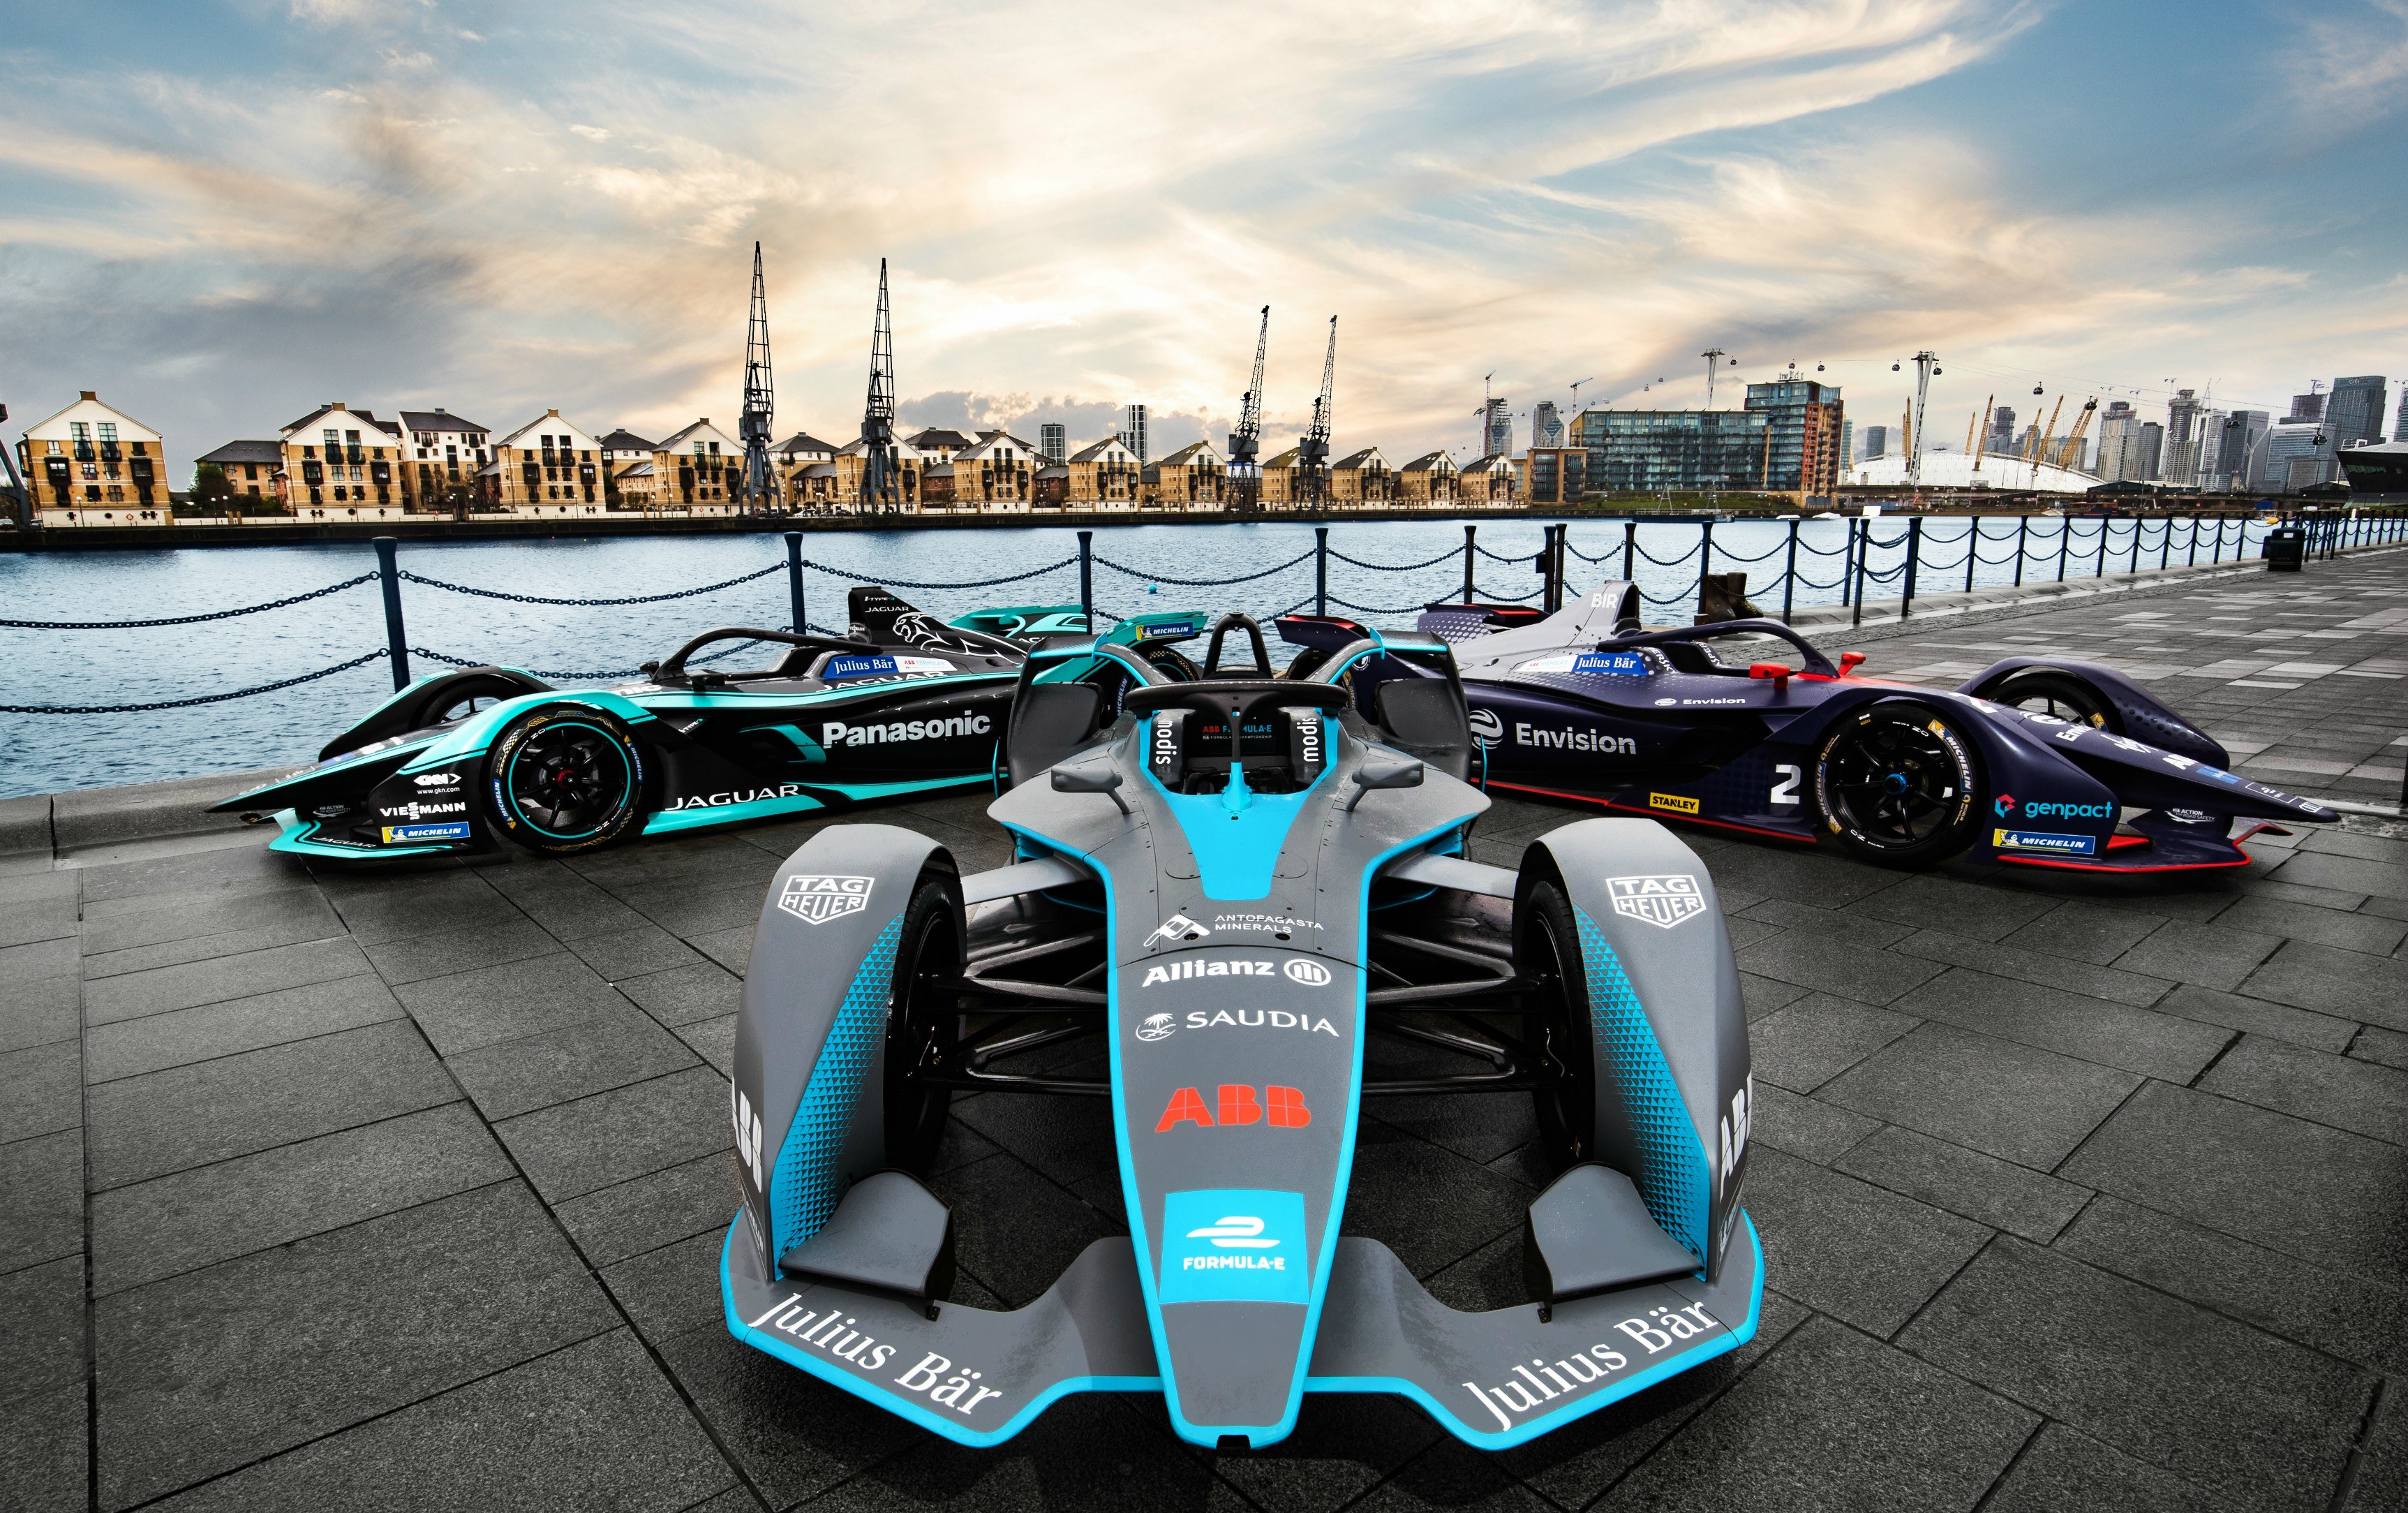 Three Formula E cars on display with the docks in the background